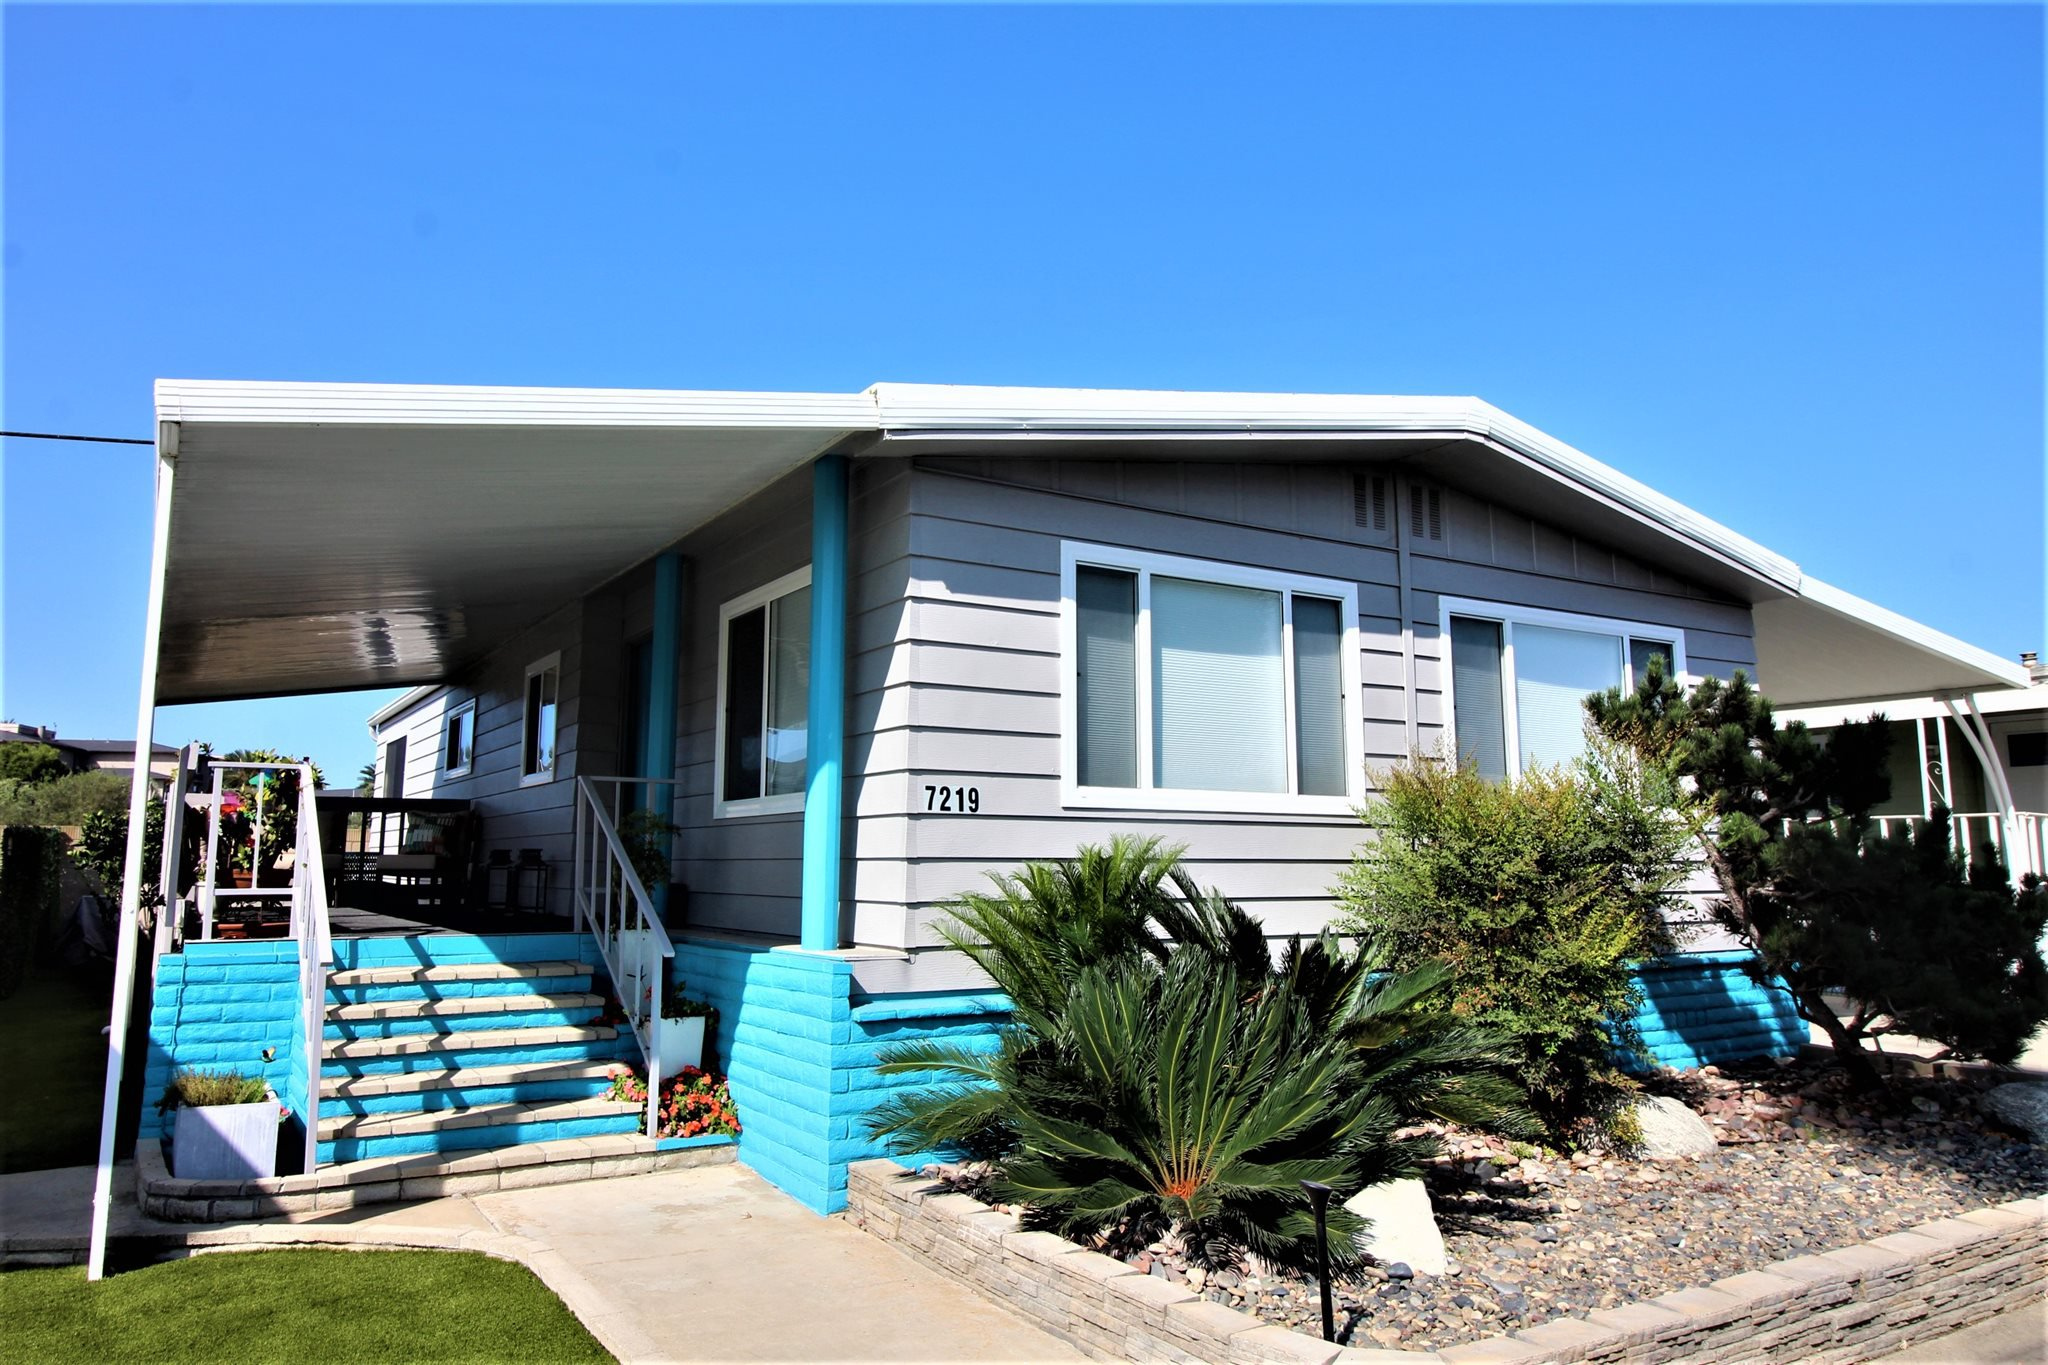 Main Photo: CARLSBAD WEST Mobile Home for sale : 2 bedrooms : 7219 San Luis St. #174 in Carlsbad